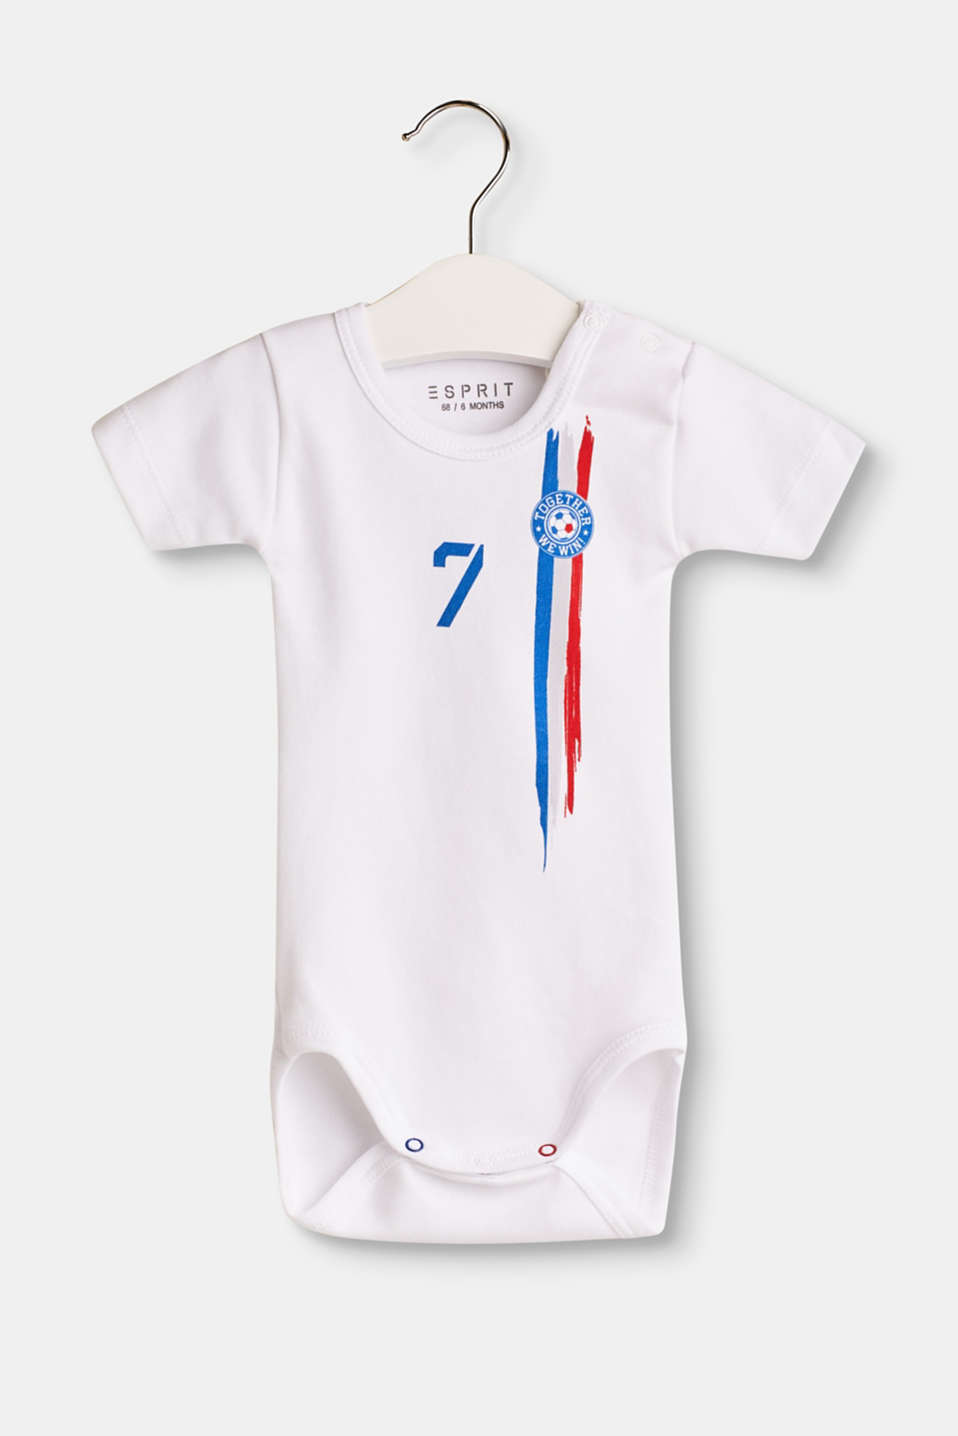 Esprit - Body with a flag print, 100% cotton